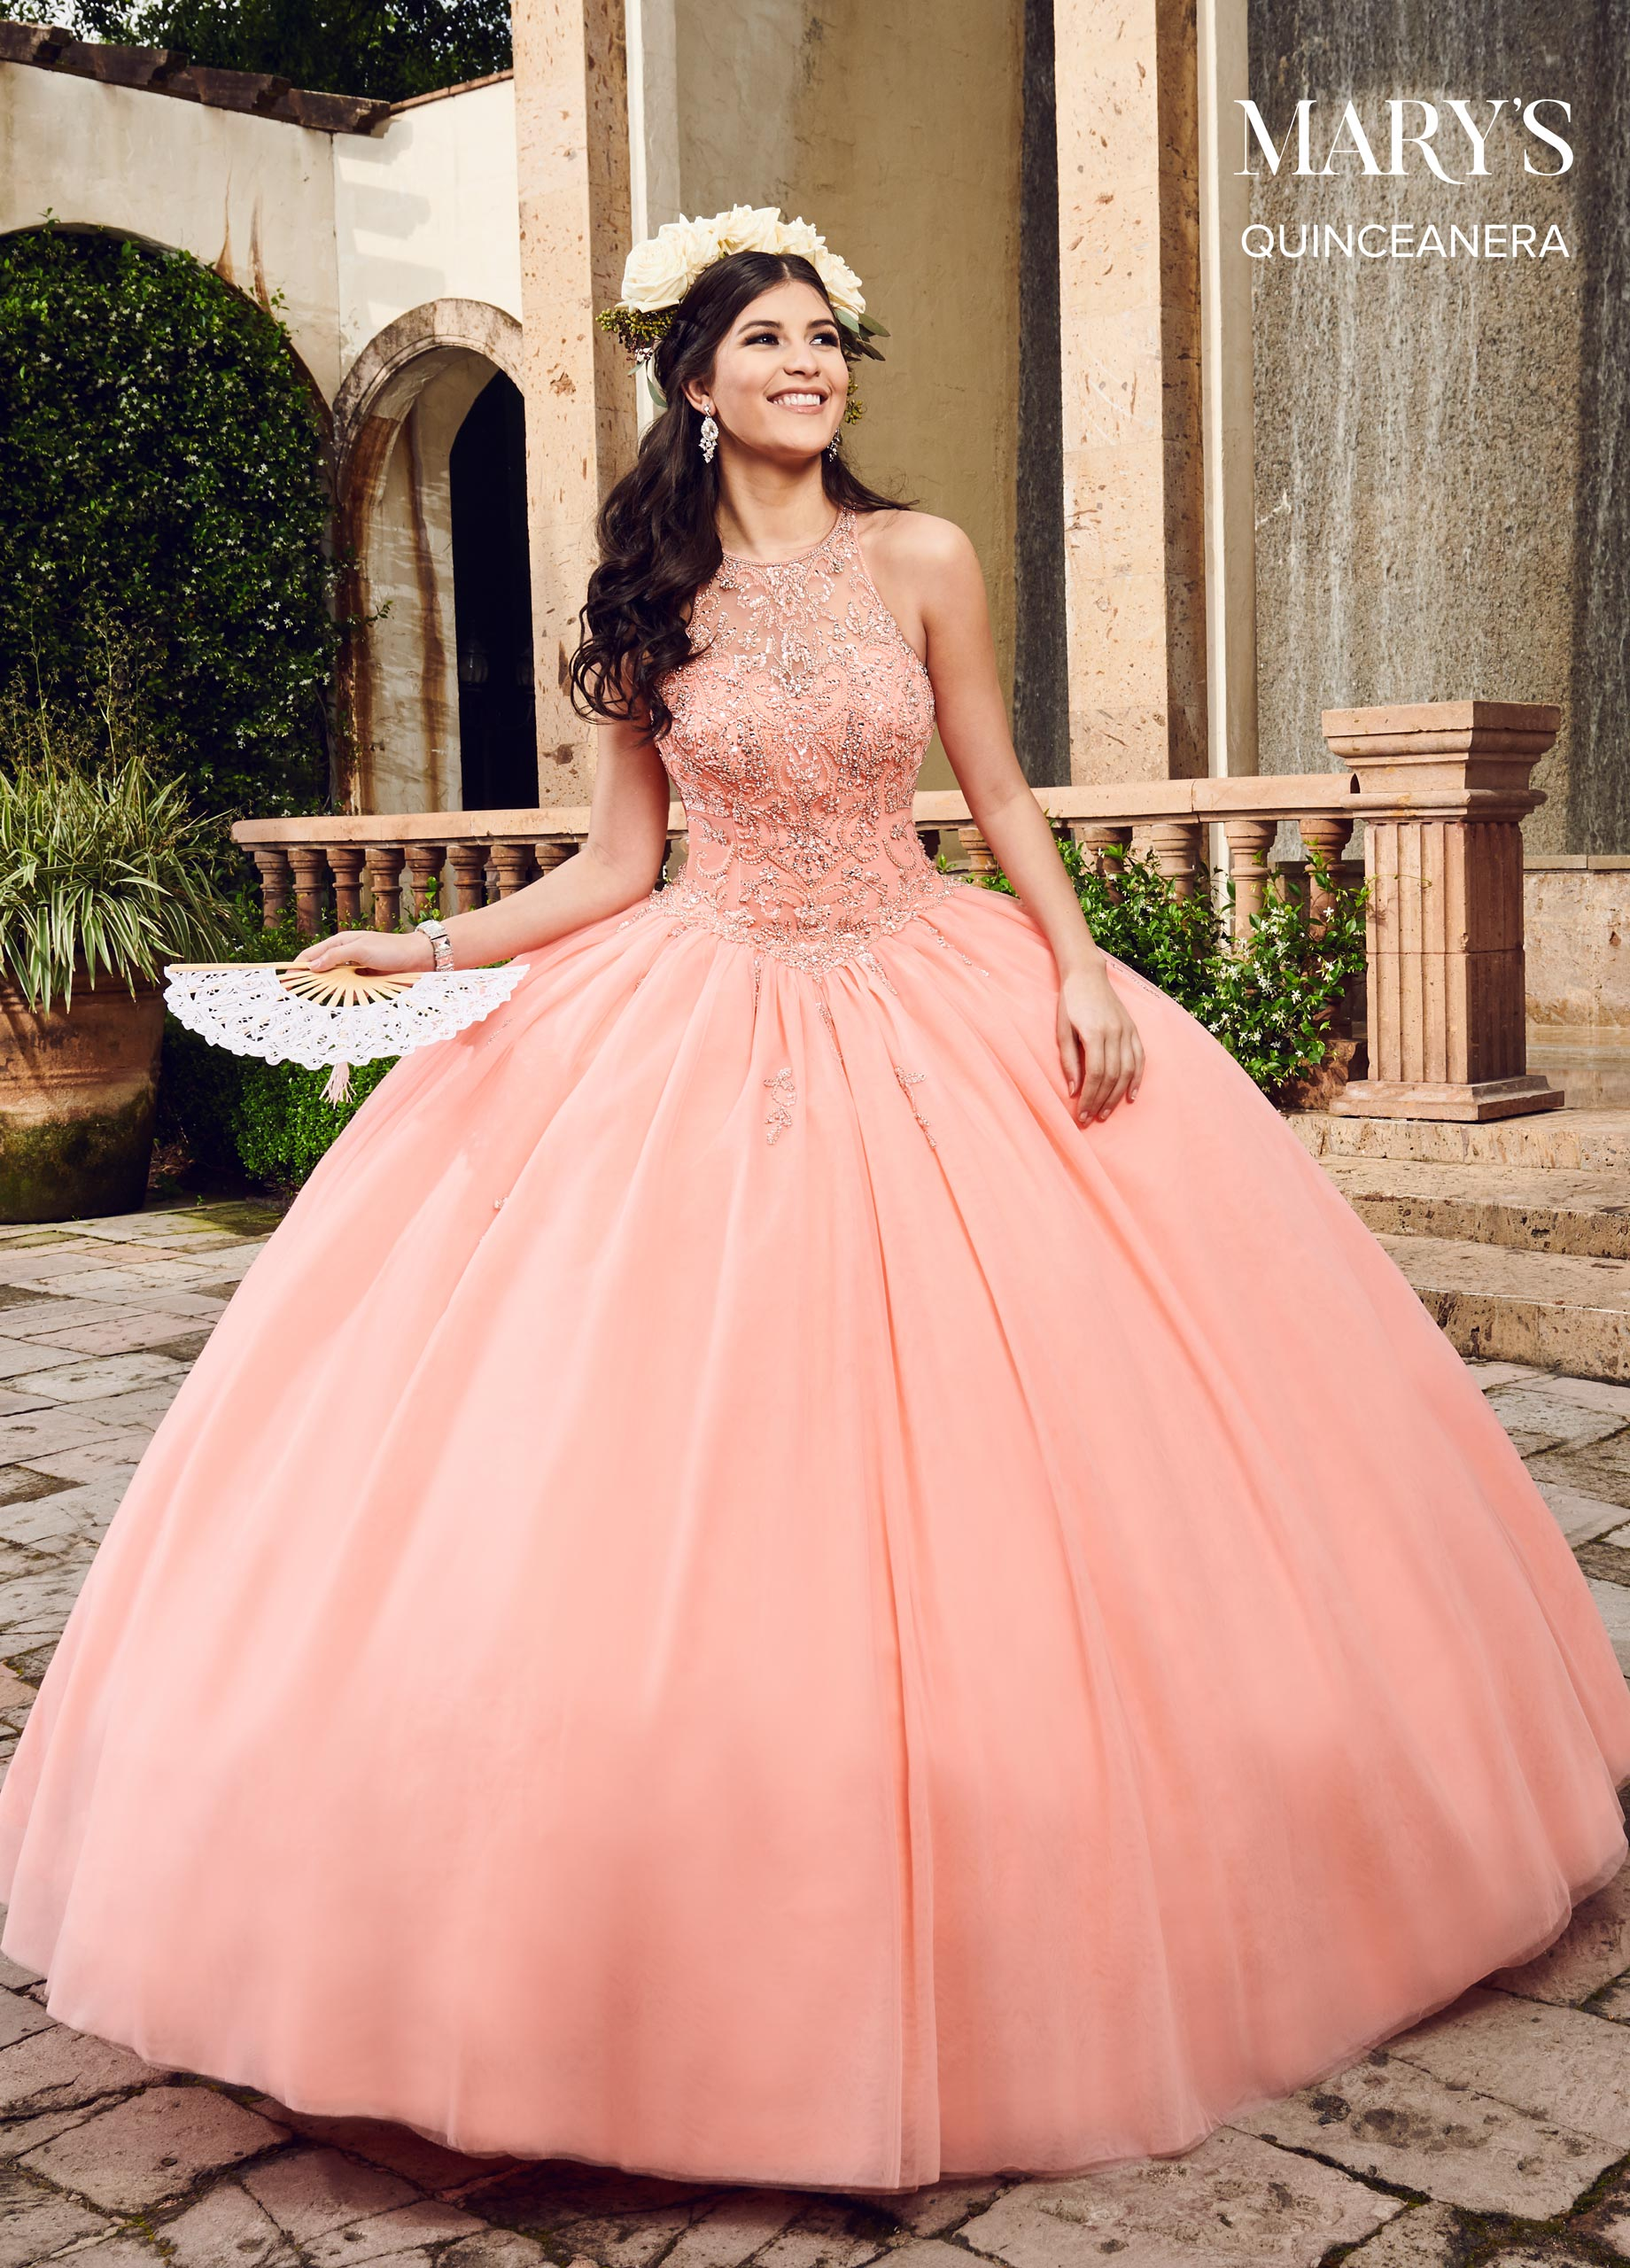 Marys Quinceanera Dresses